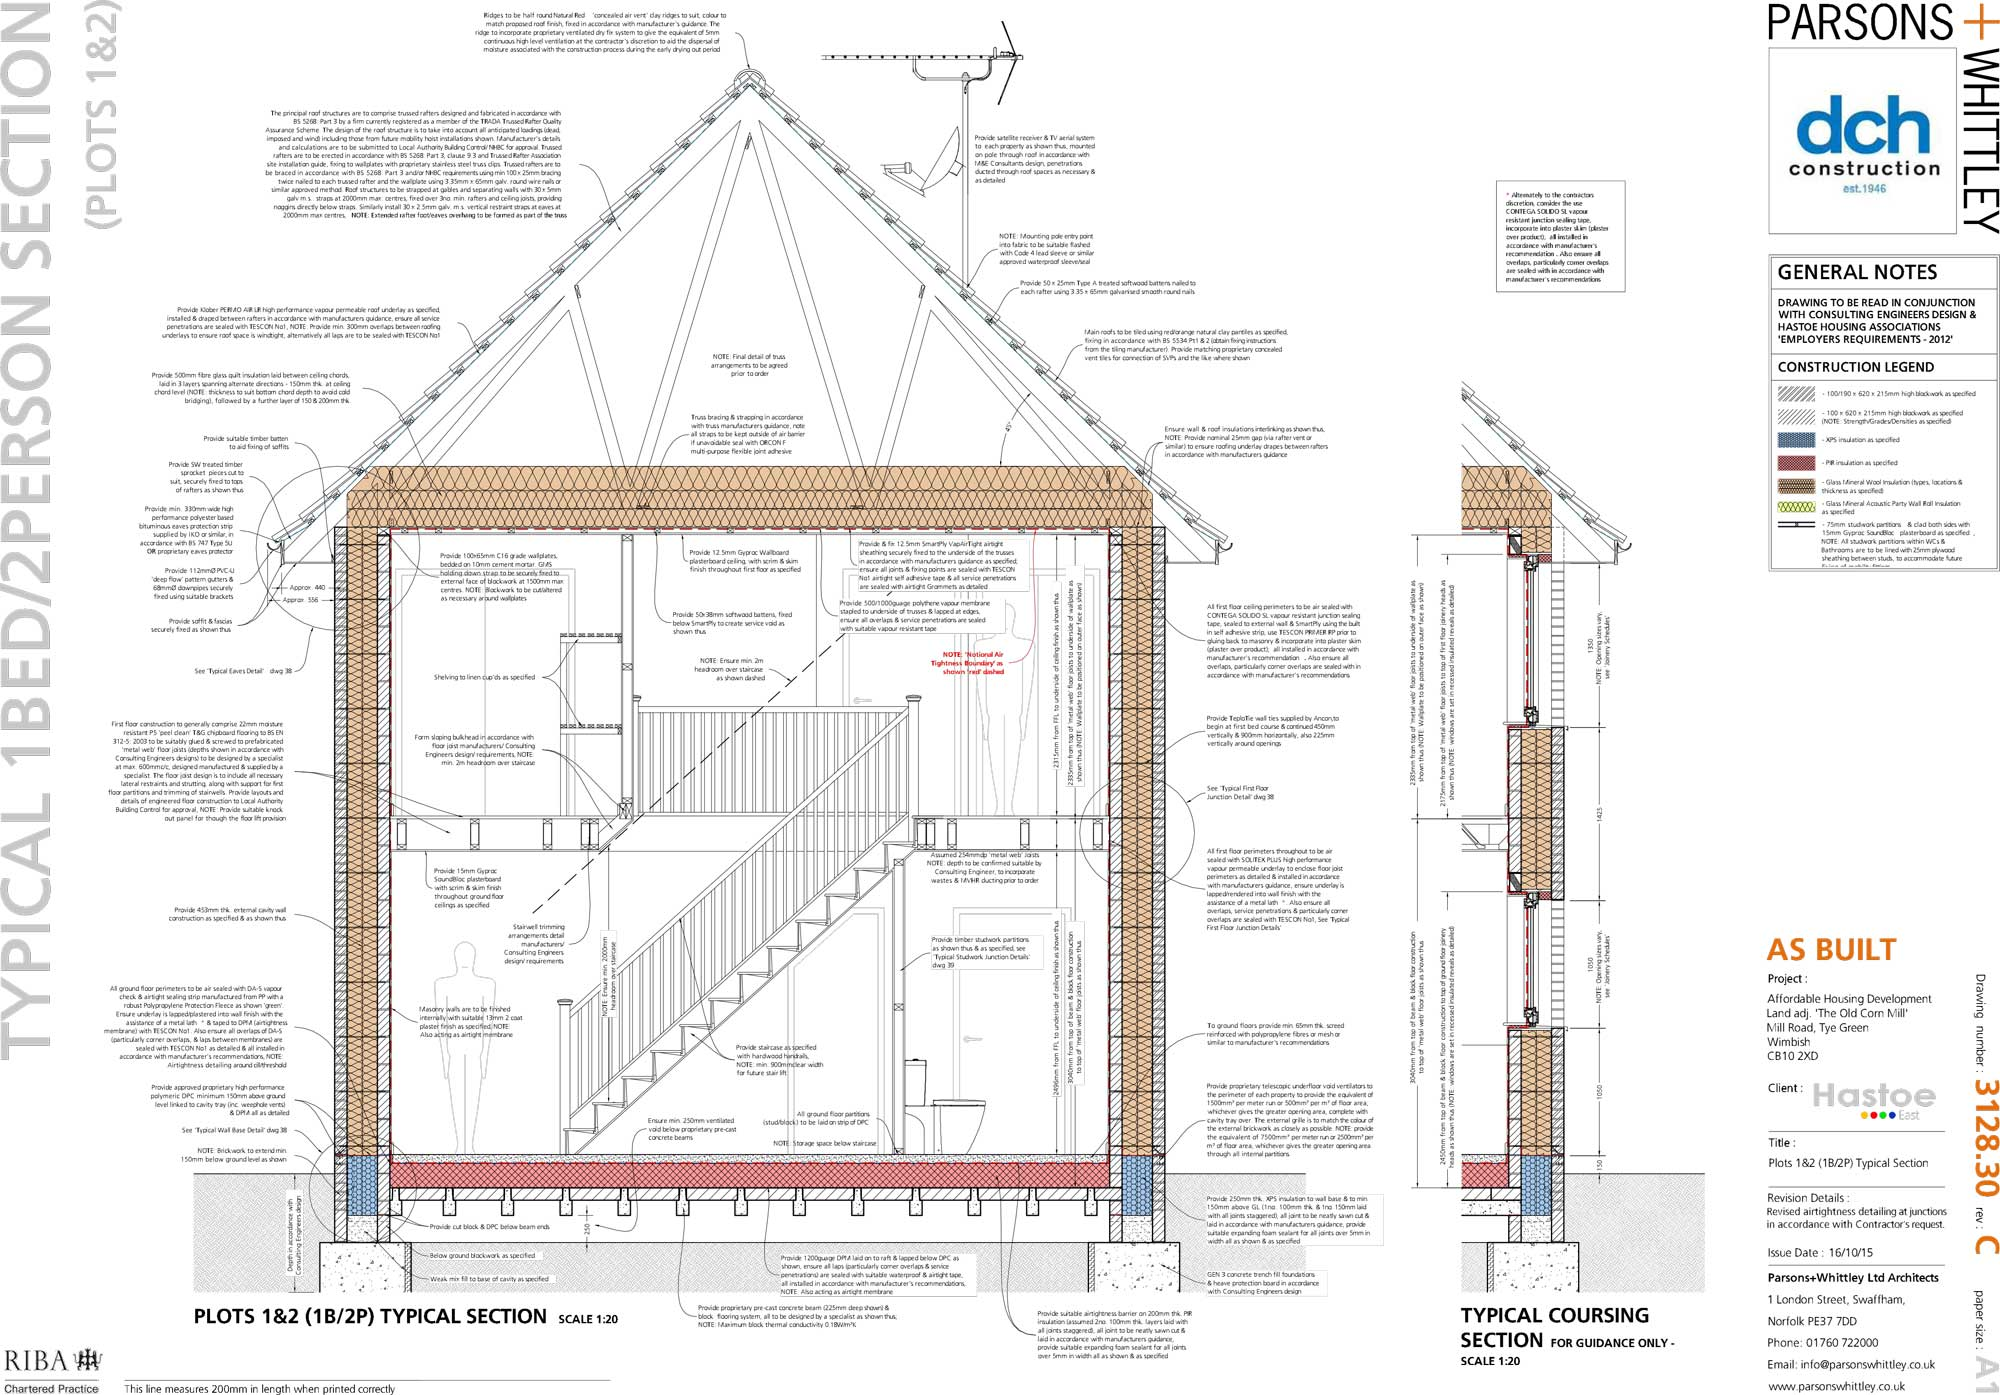 Essex Village Becomes Eco Pioneer With Latest Passive House Scheme Typicalonelinesinglelinediagramjpg Click To Enlarge Image Plot 1 And 2 Typical Sections